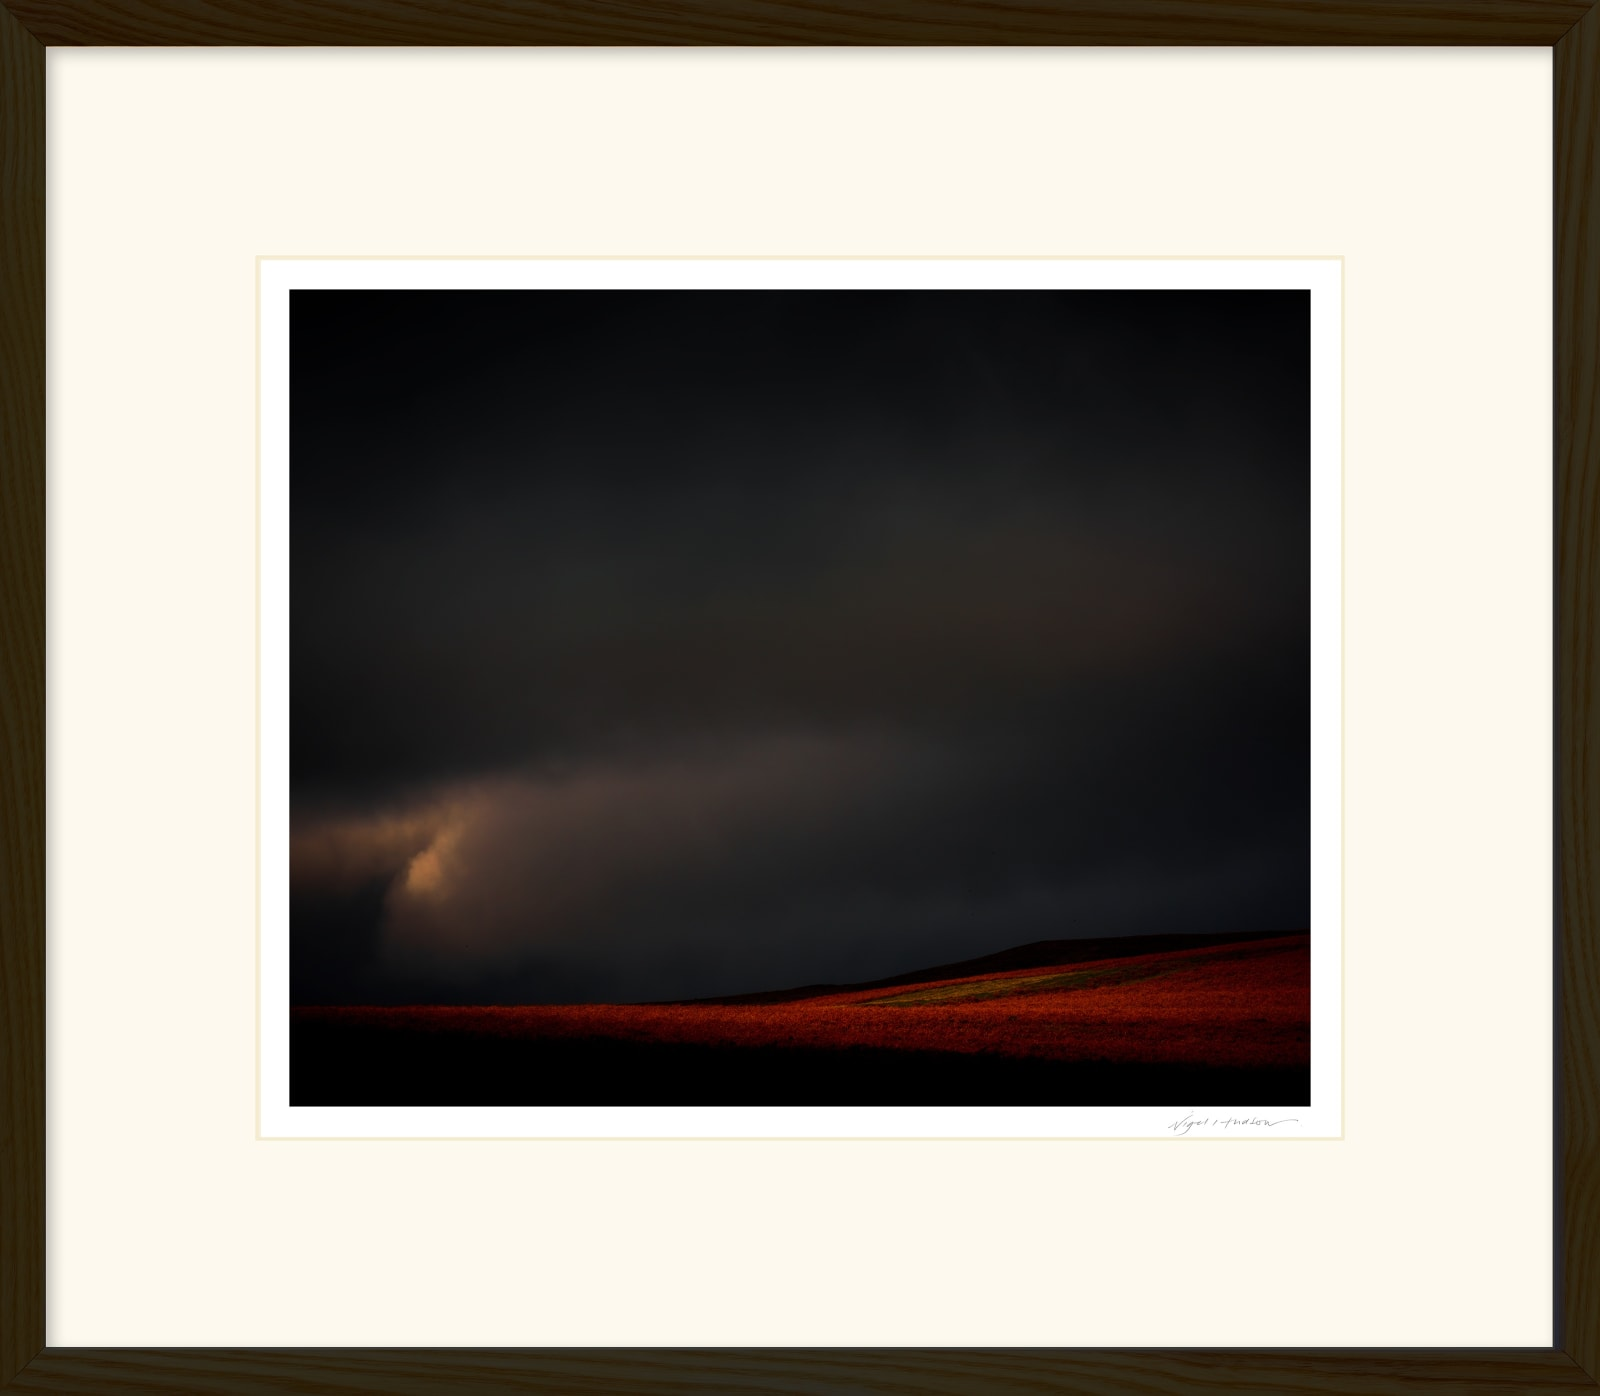 'CROSS LIGHT' Archival Pigment Print on Platinum Etching Fine Art Paper. Framed in an Oiled Walnut Cushion Frame and protected with crystal clear Water White Glass. Available in an edition of 3 in three sizes. Prices from £245.00 including first class courier delivery within five working days.